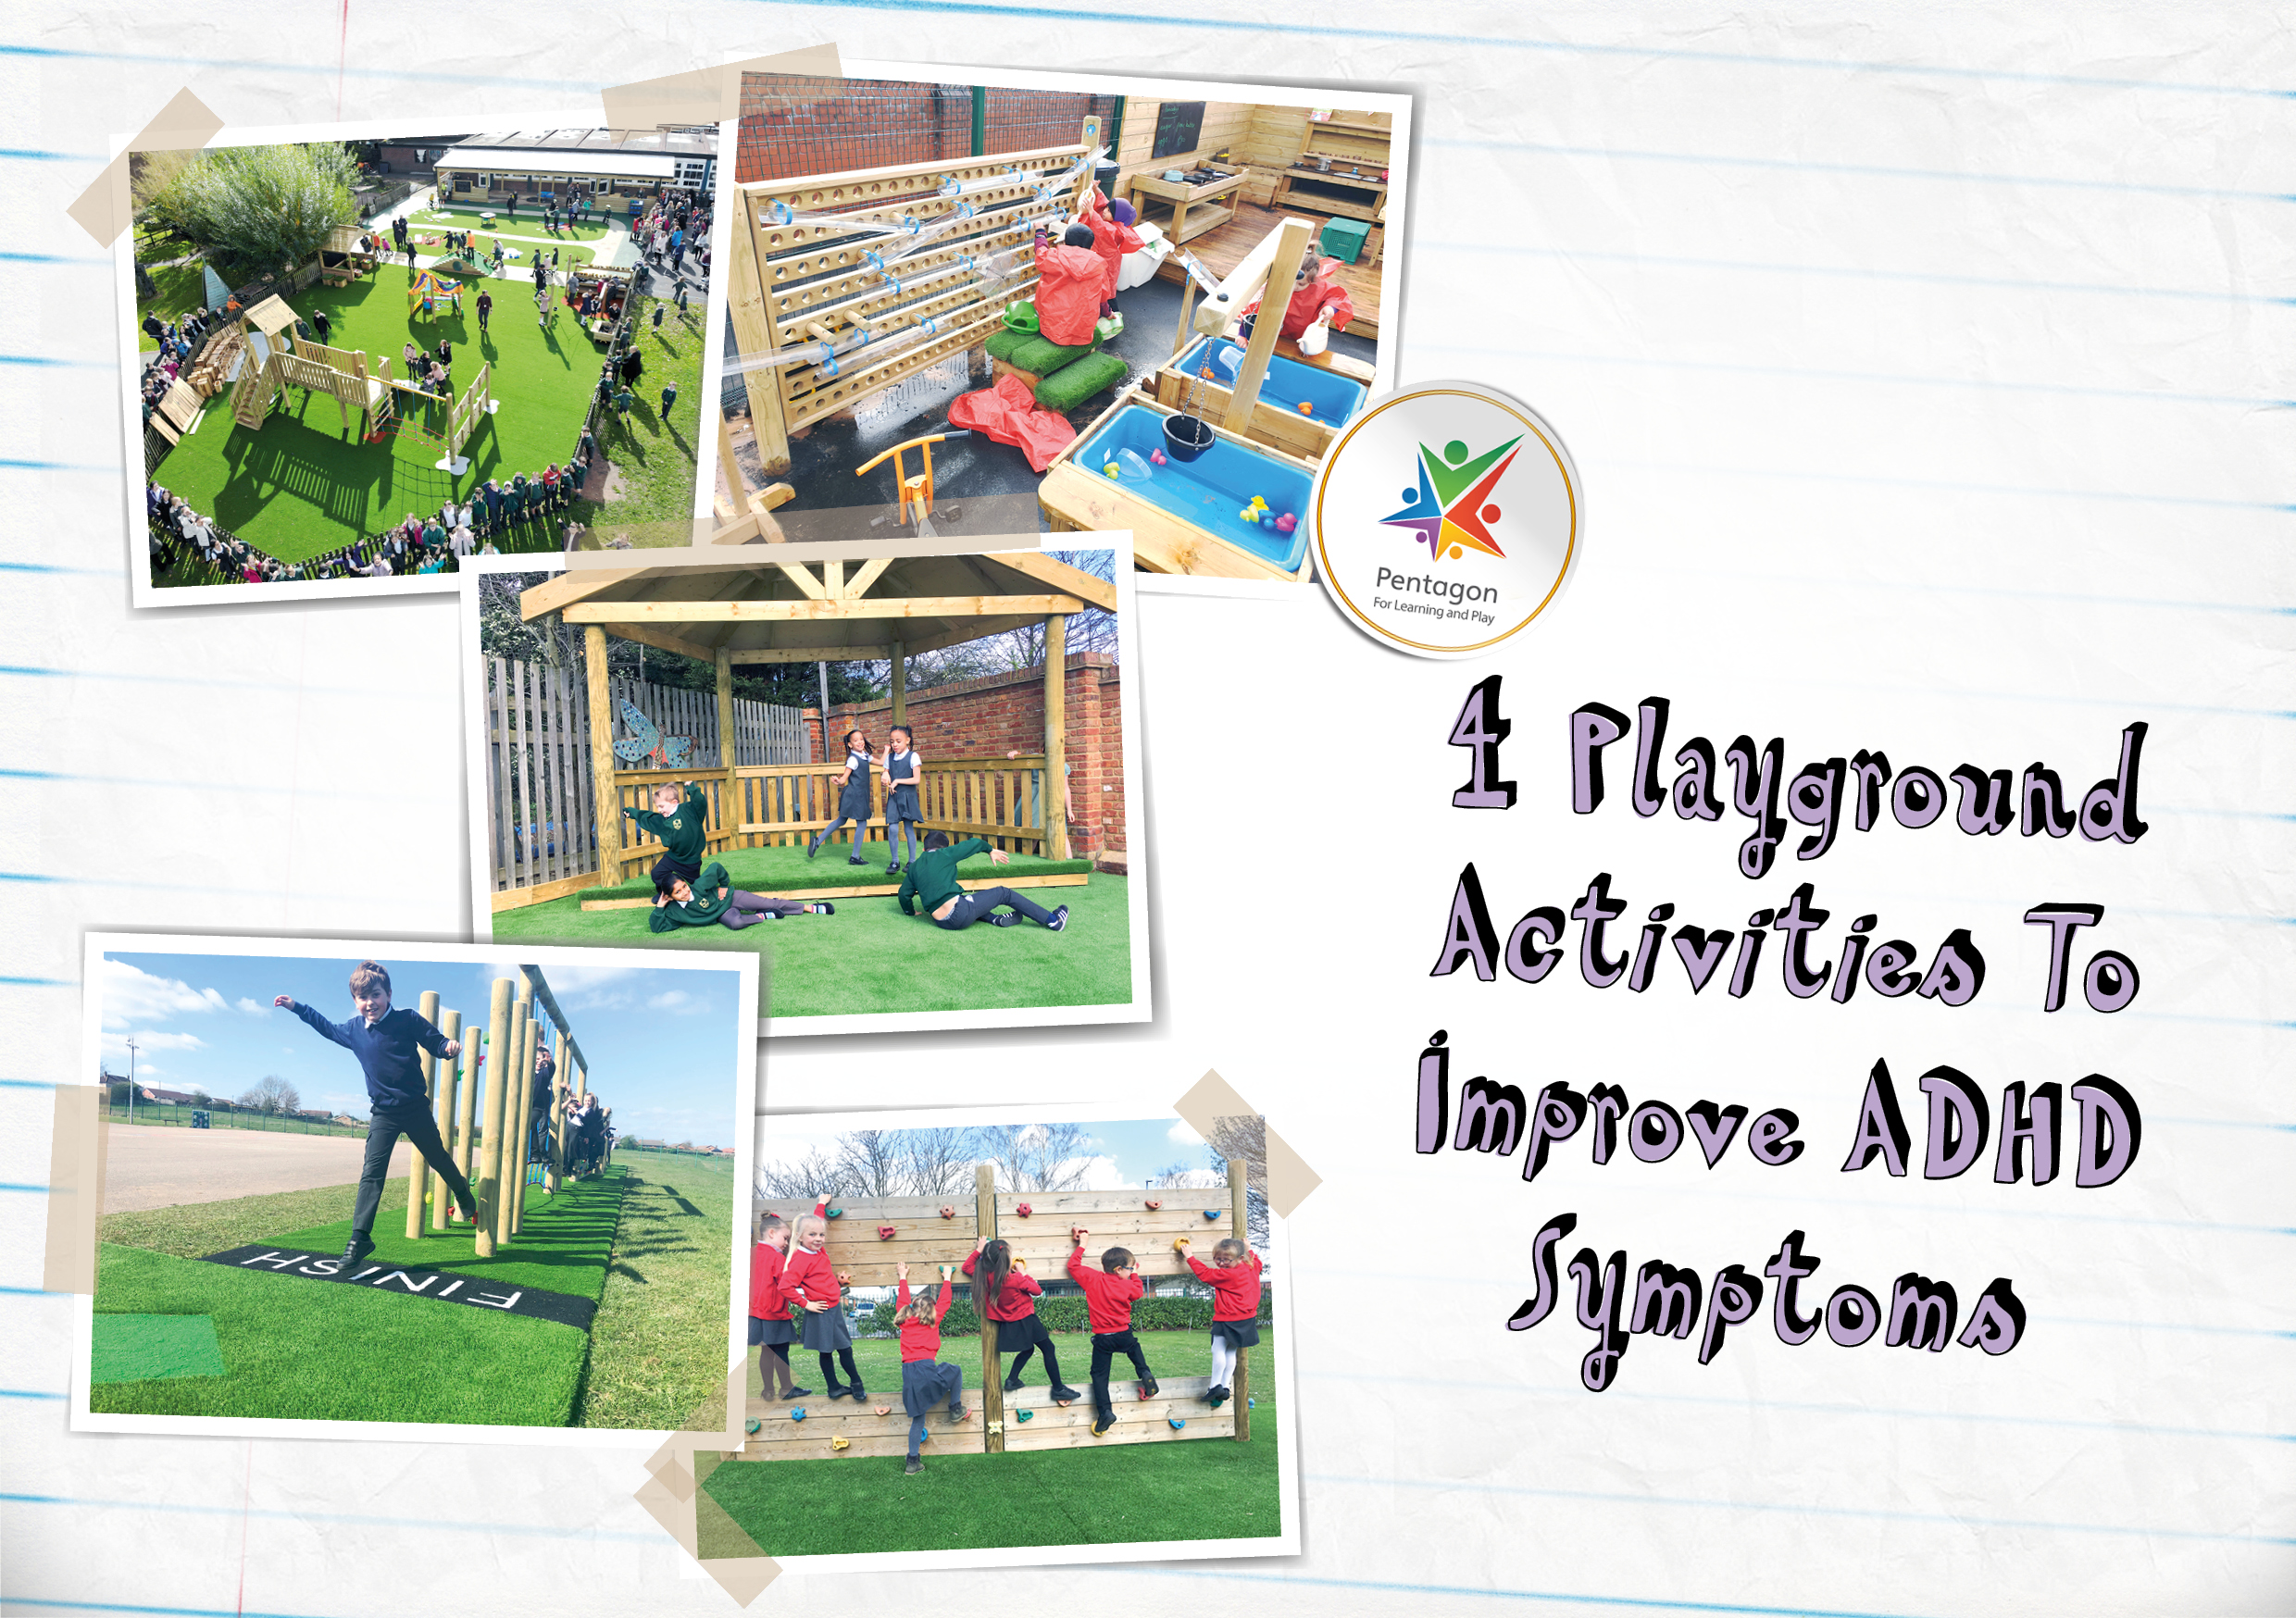 An Upside Of Having Adhd Outside Box >> 4 Playground Activities To Improve Adhd Symptoms Pentagon Play